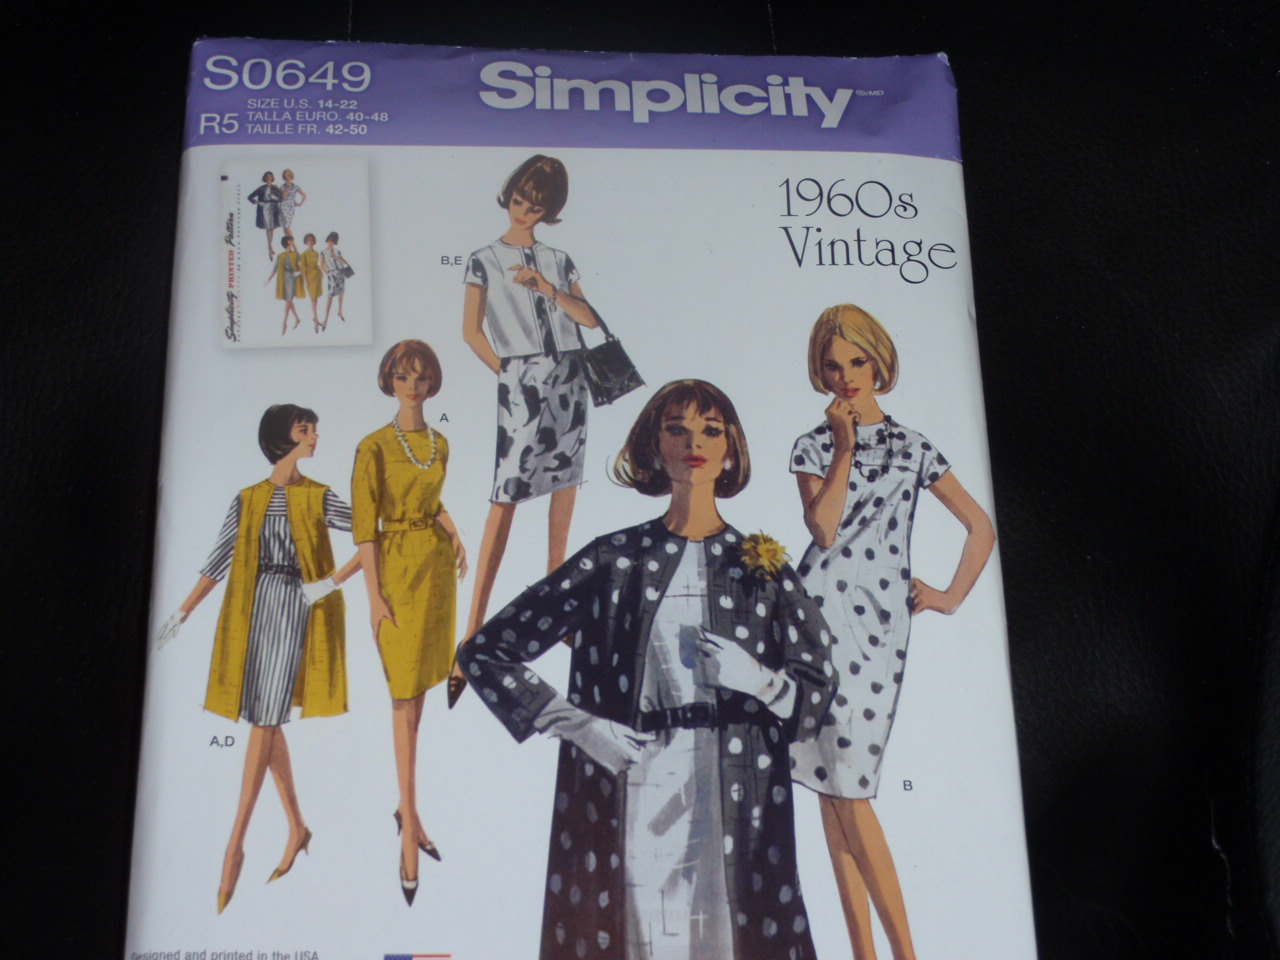 Primary image for Simplicity S0649 Unlined Coat or Vest and Dress Pattern 1960 Vintage Size 14-22